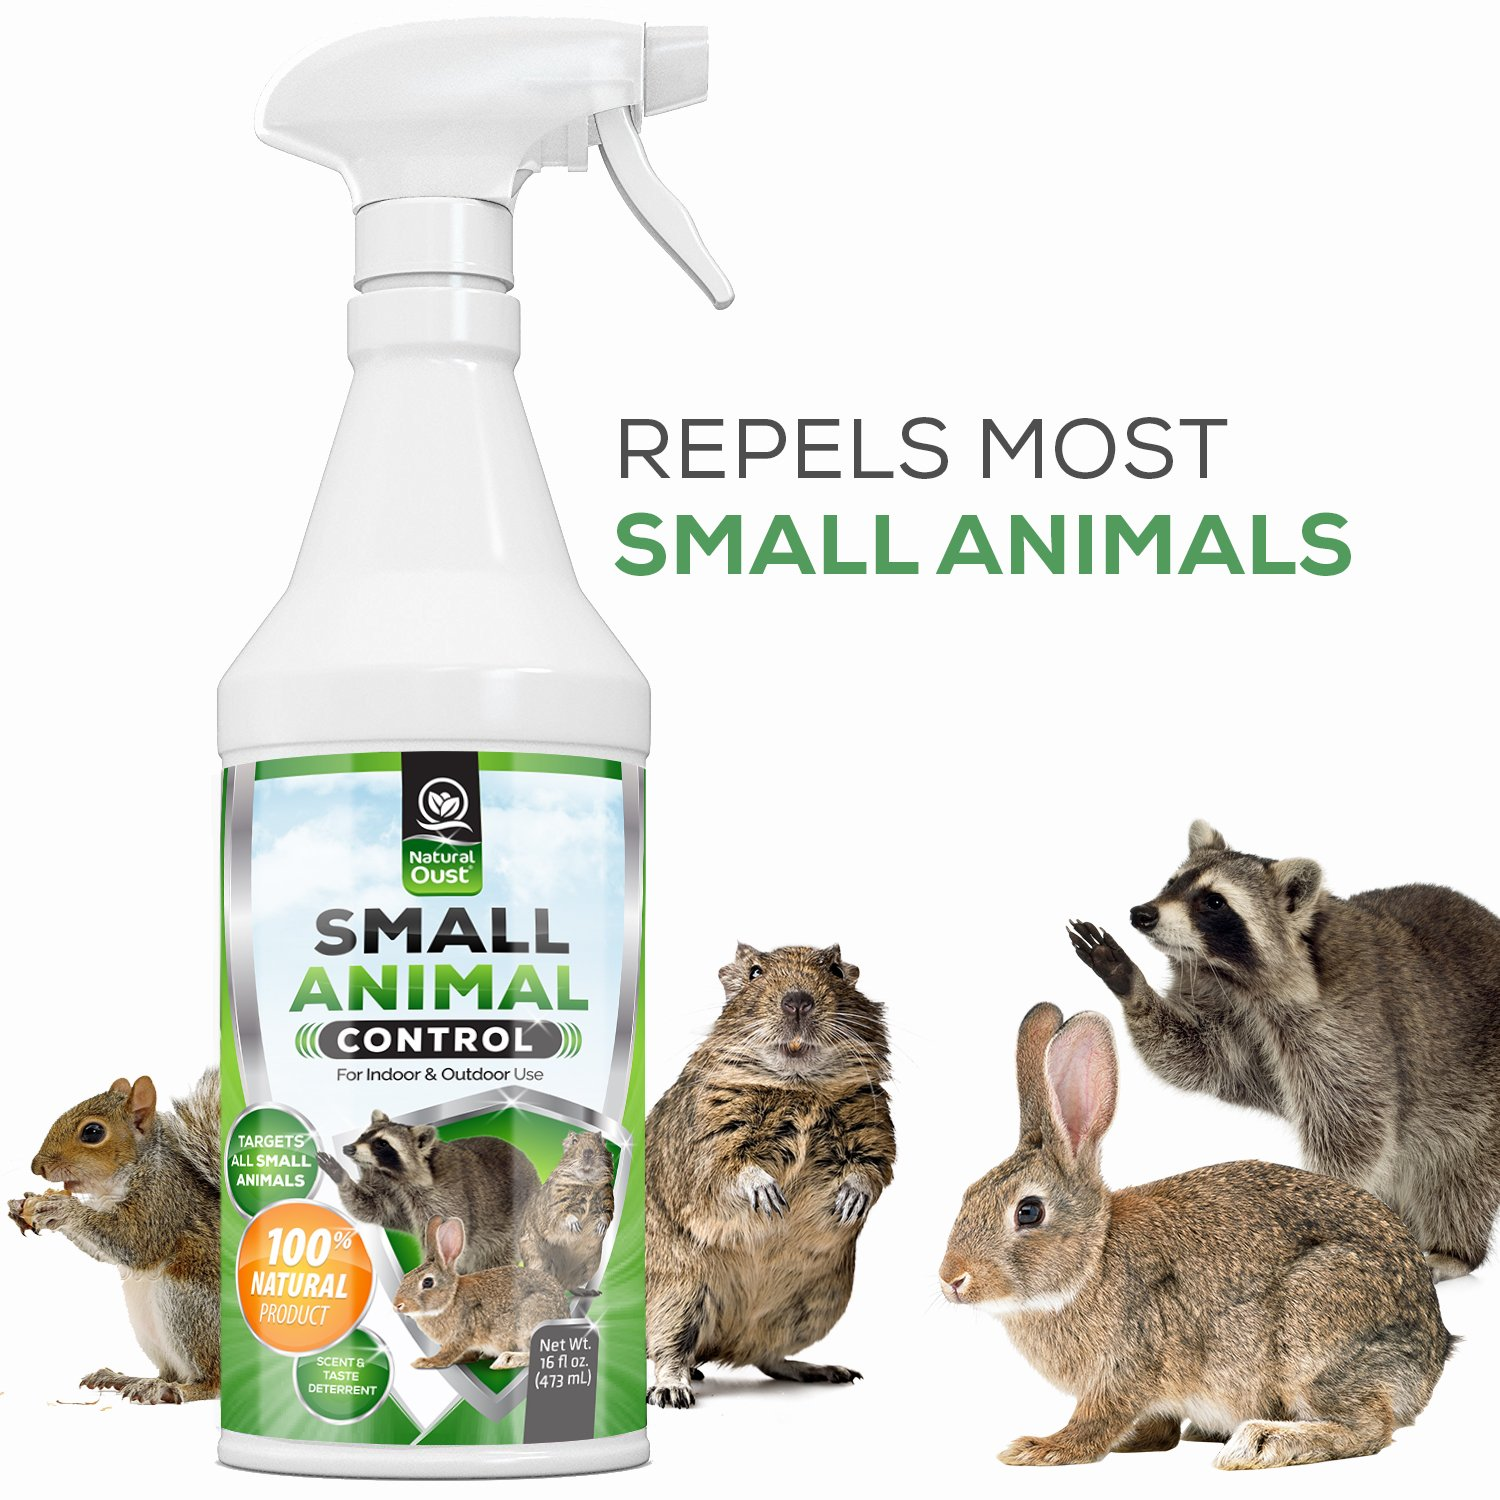 Natural Oust Small Animal Repellent Spray | Natural, Cruelty Free Rodent Deterrent | Squirrels, Gophers, Rabbits, Mice, Rats, Raccoons | Indoor, Outdoor Use | Trash Cans, Garage, Attic, Garden